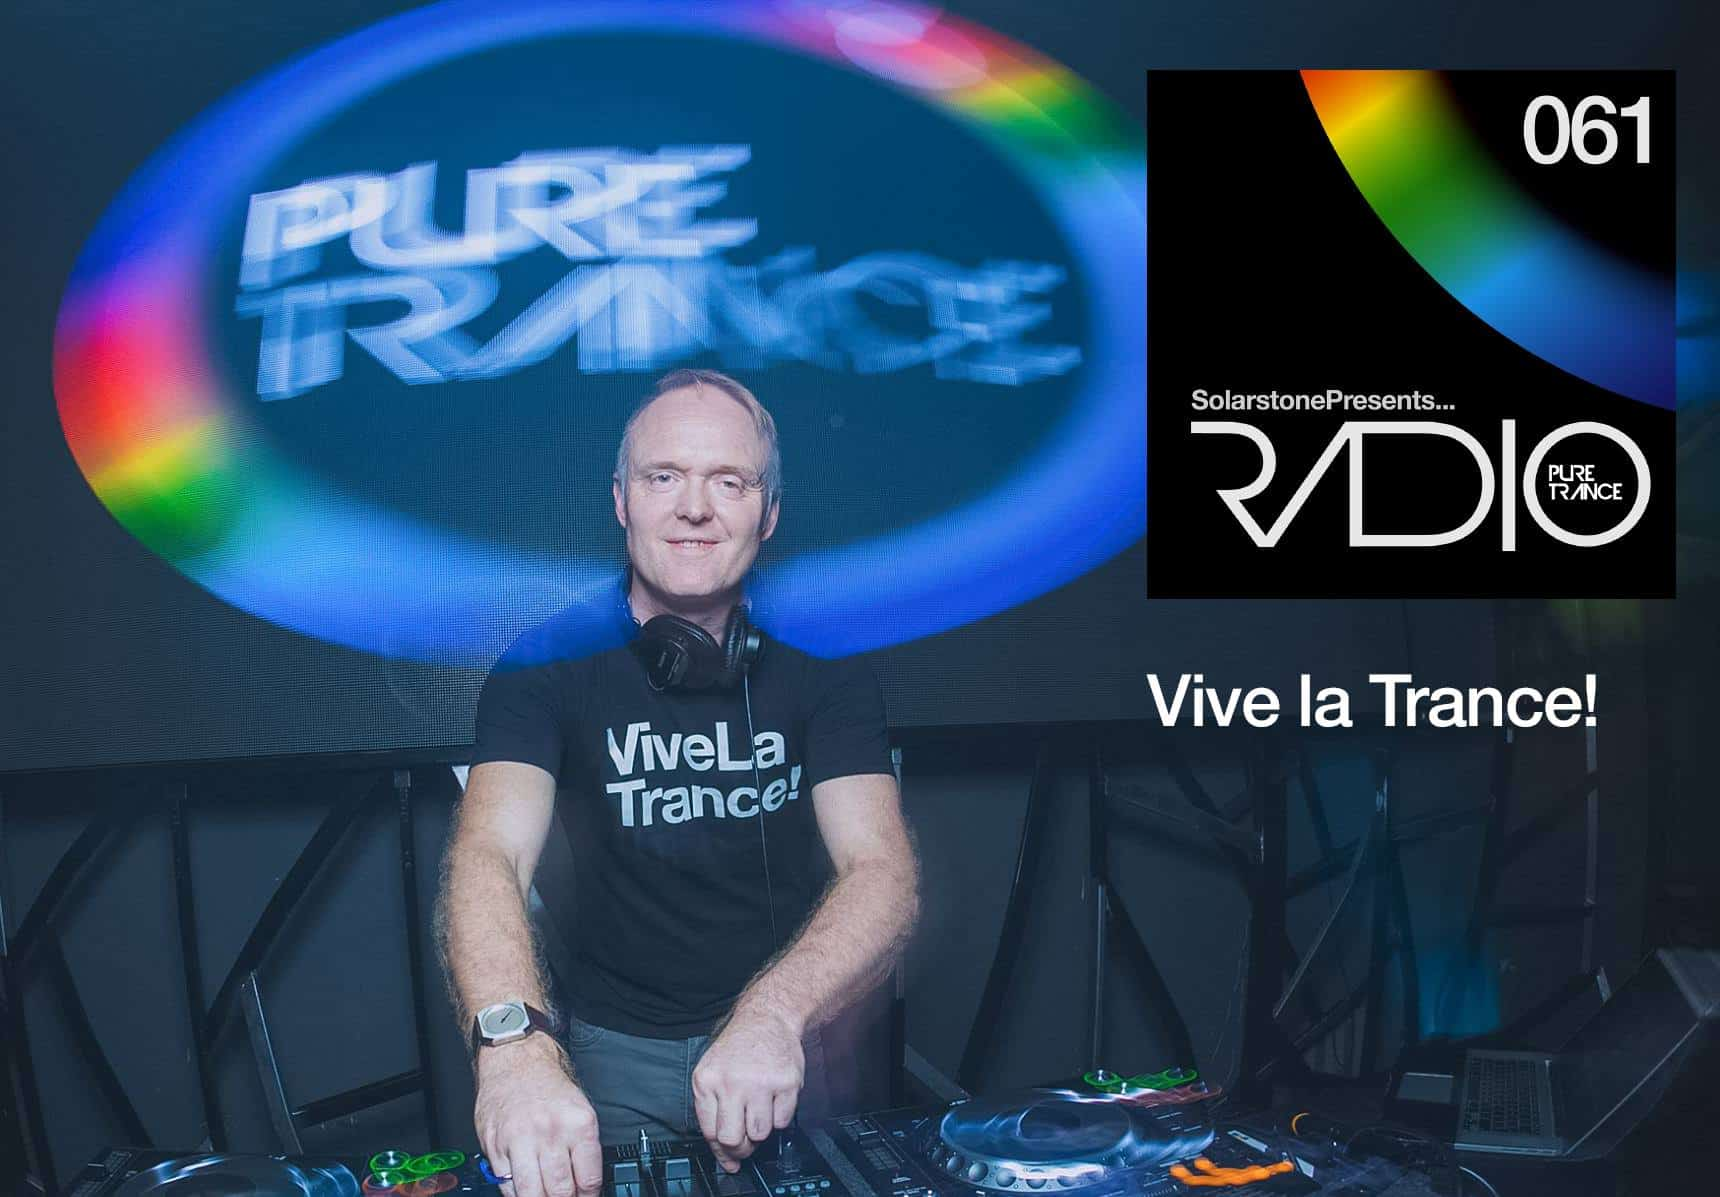 Pure Trance Radio 061 (09.11.2016) with Solarstone